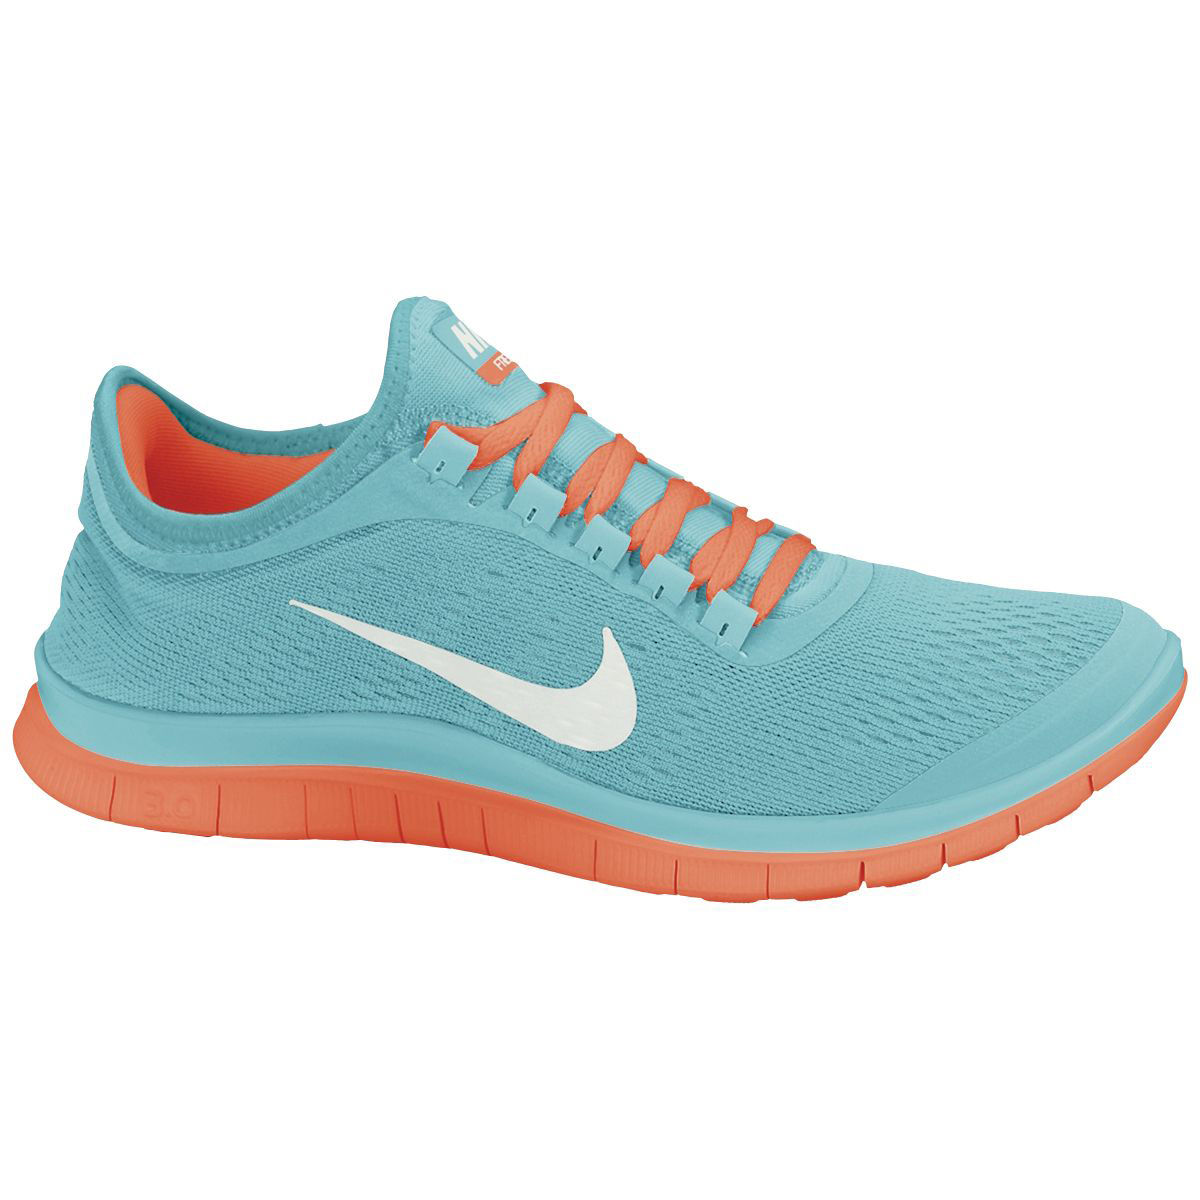 Cheap Nike Fs Lite Run 2 2, Cheap Nike Shipped Free at Zappos